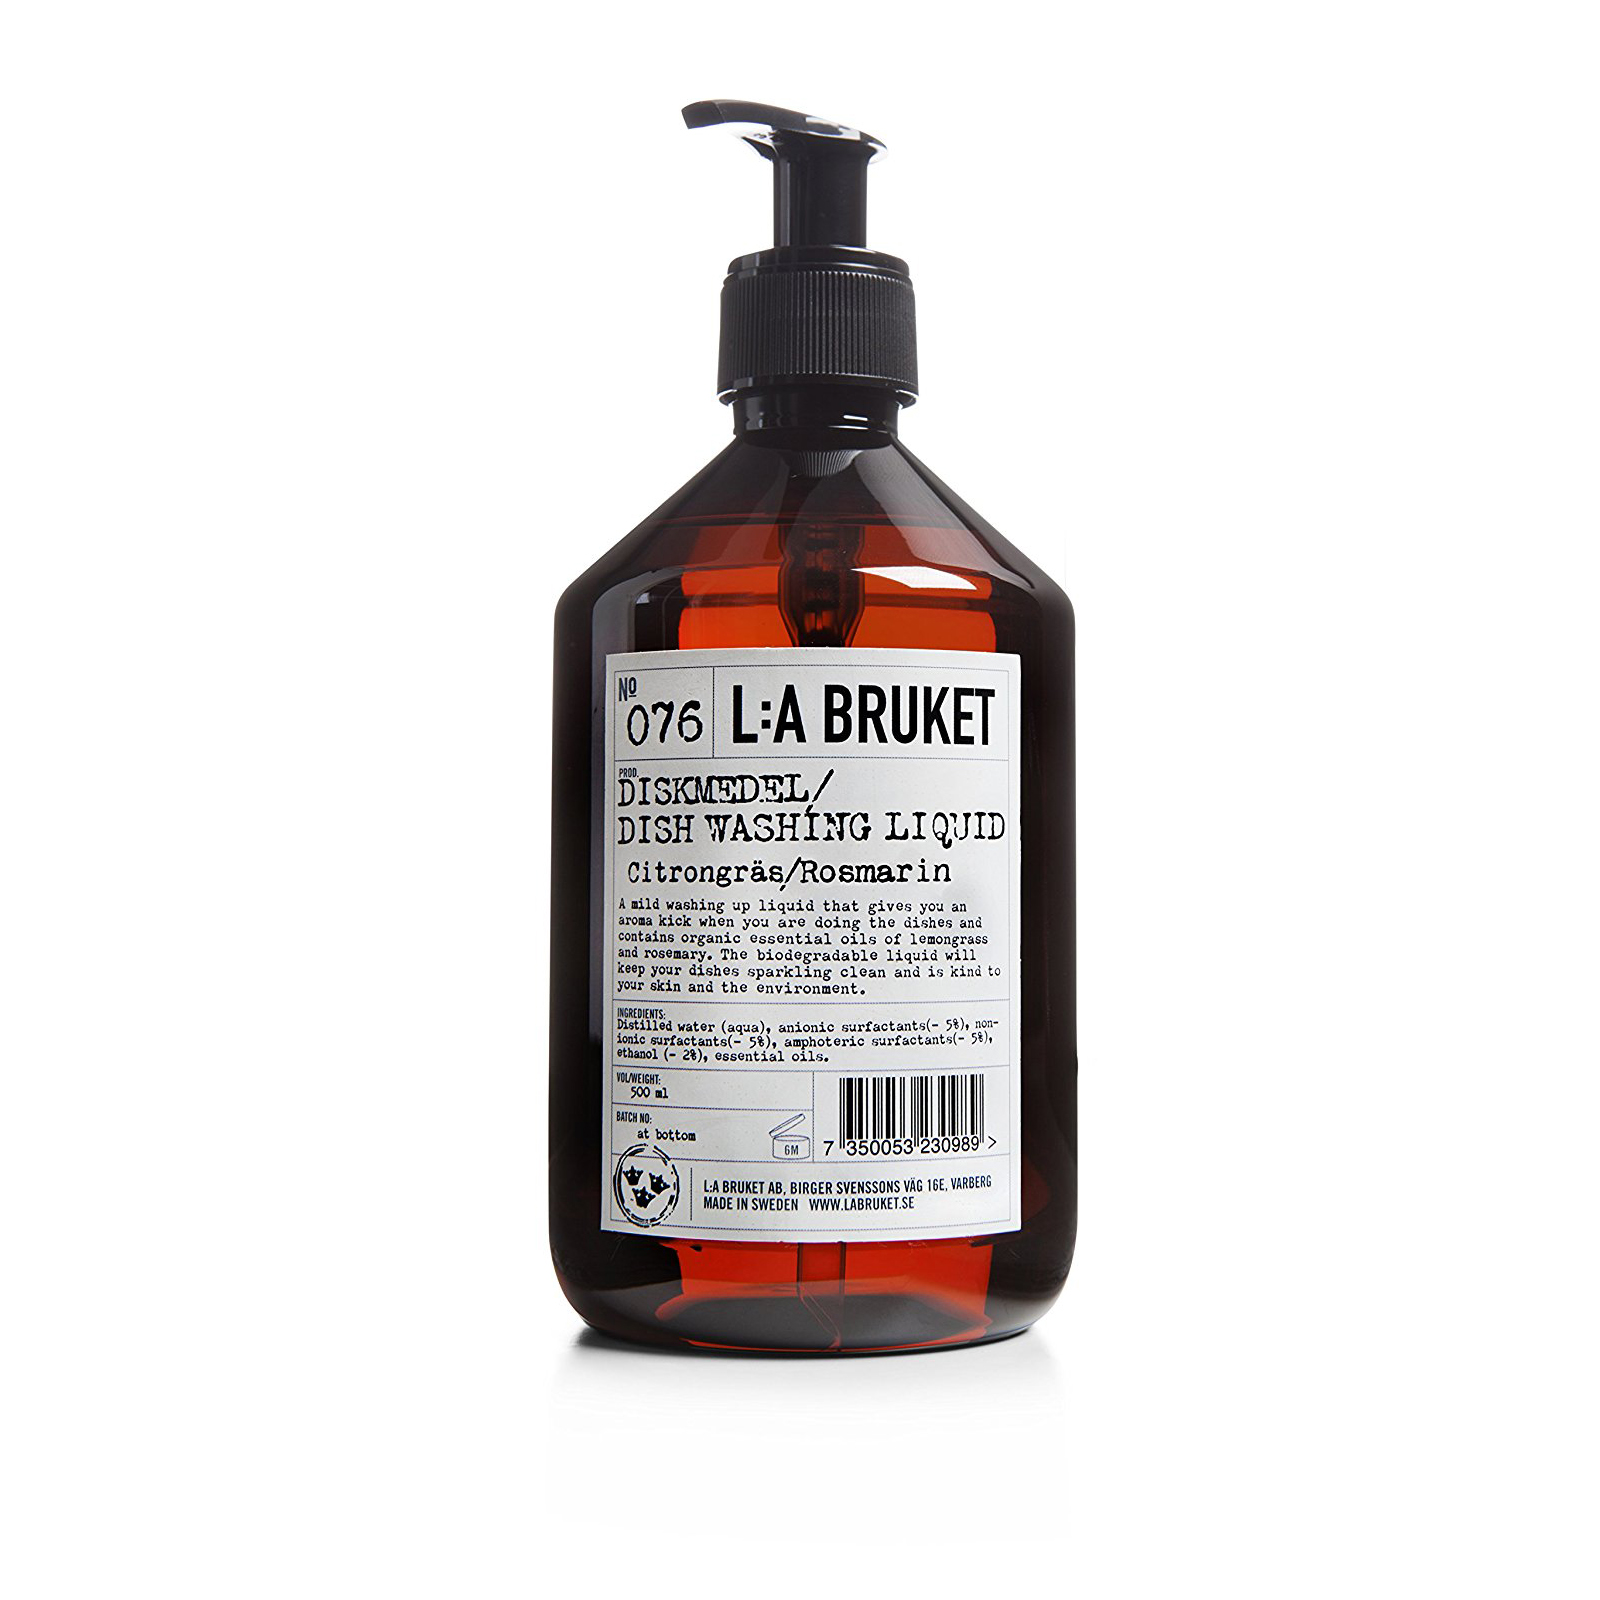 No. 076 Lemongrass/Rosemary Dishwashing Soap 500 ml by L:A Bruket